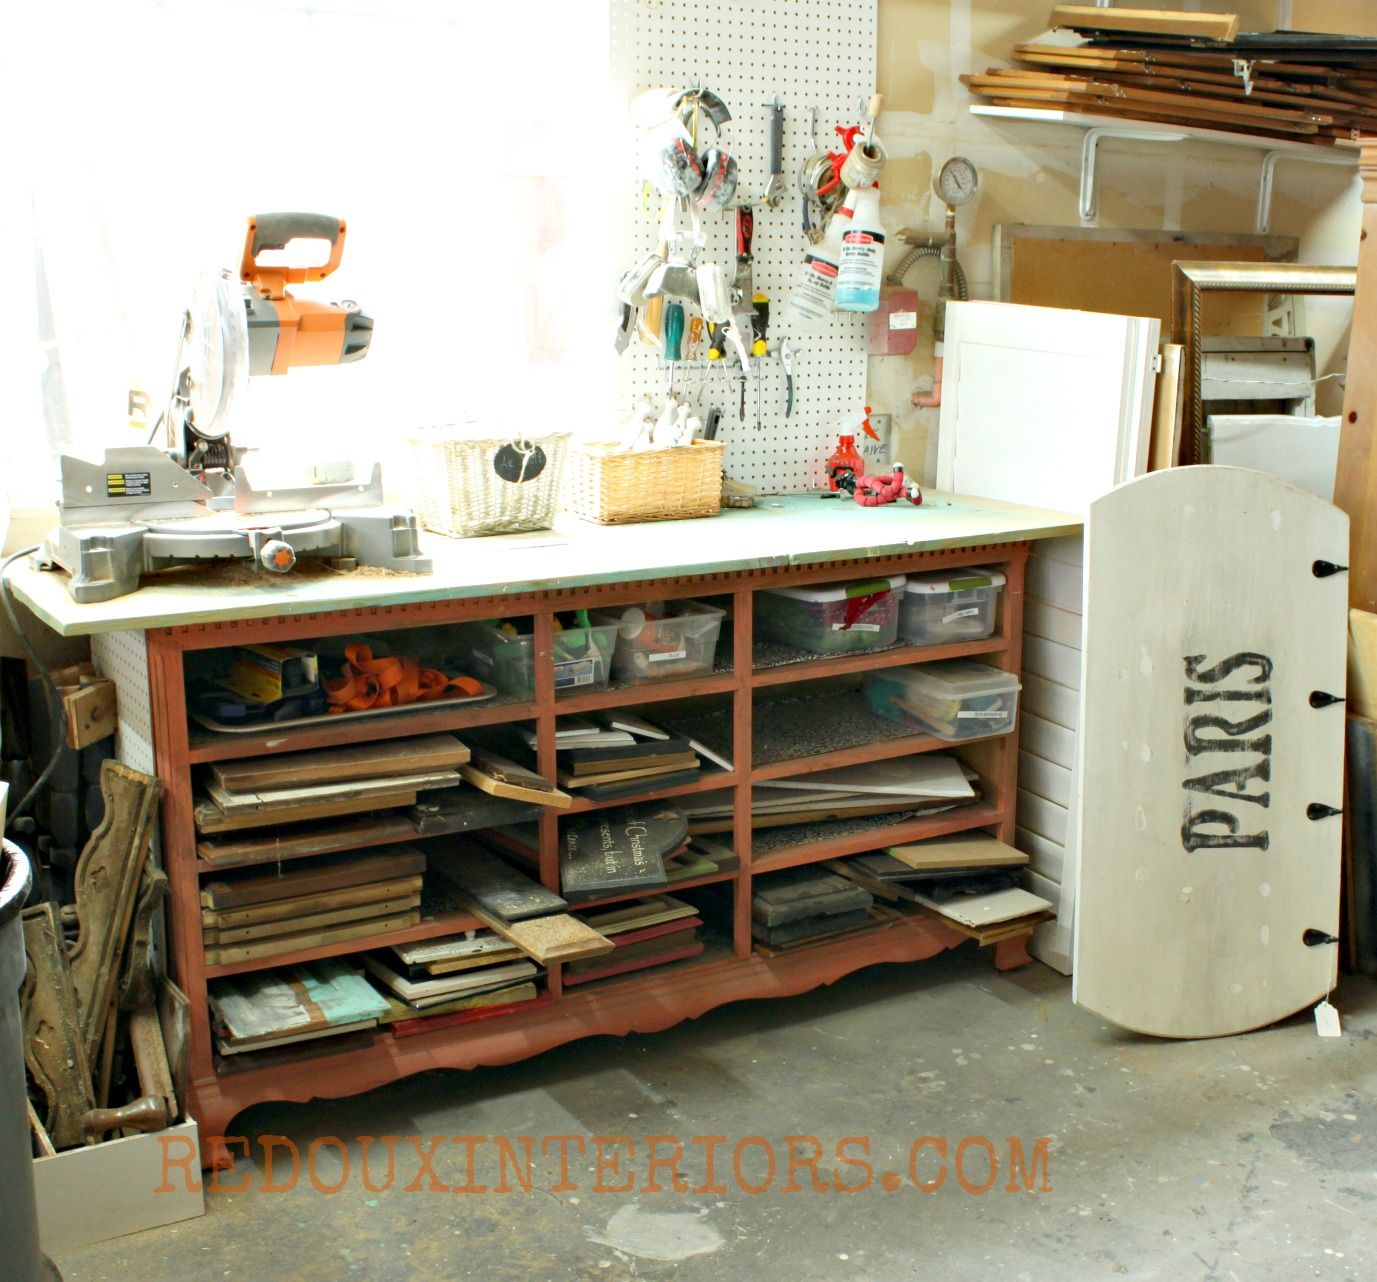 Art desk with storage organization - Art desk with storage organization ...